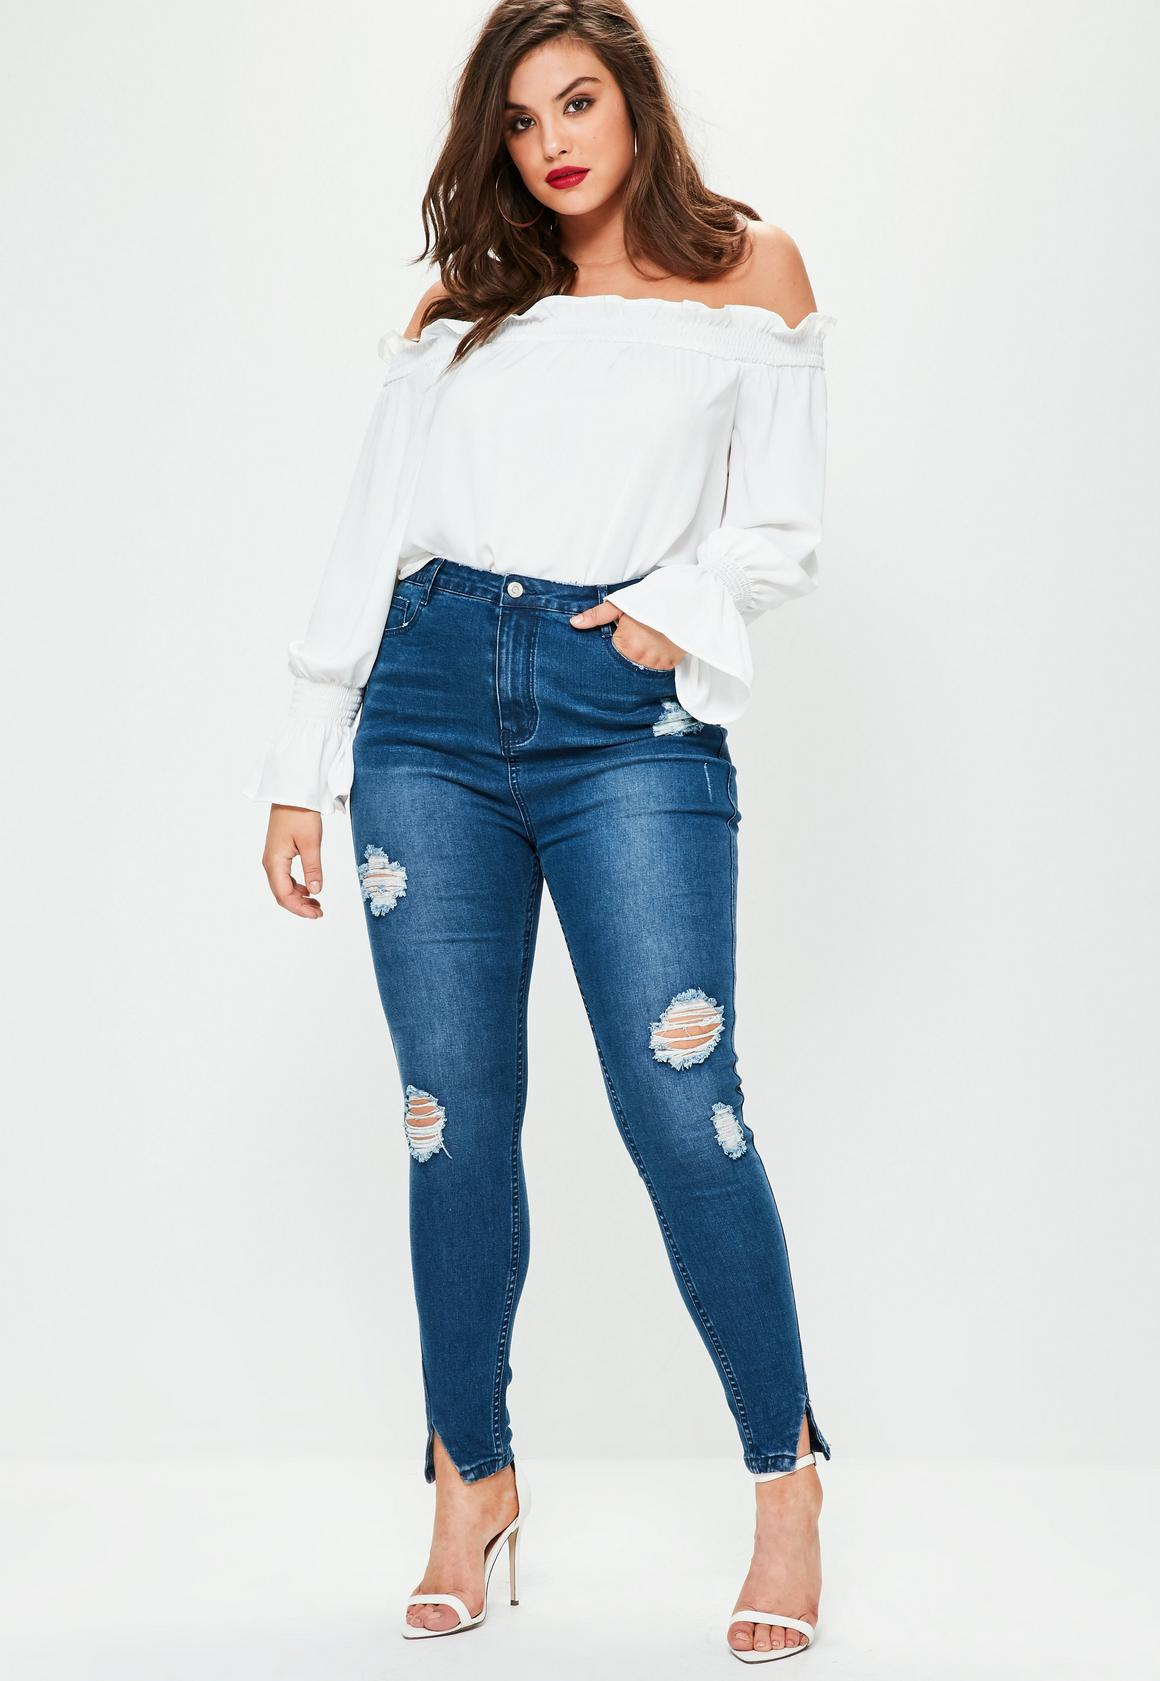 Plus Size Blue Sinner High Waisted Twisted Seam Jeans   Missguided